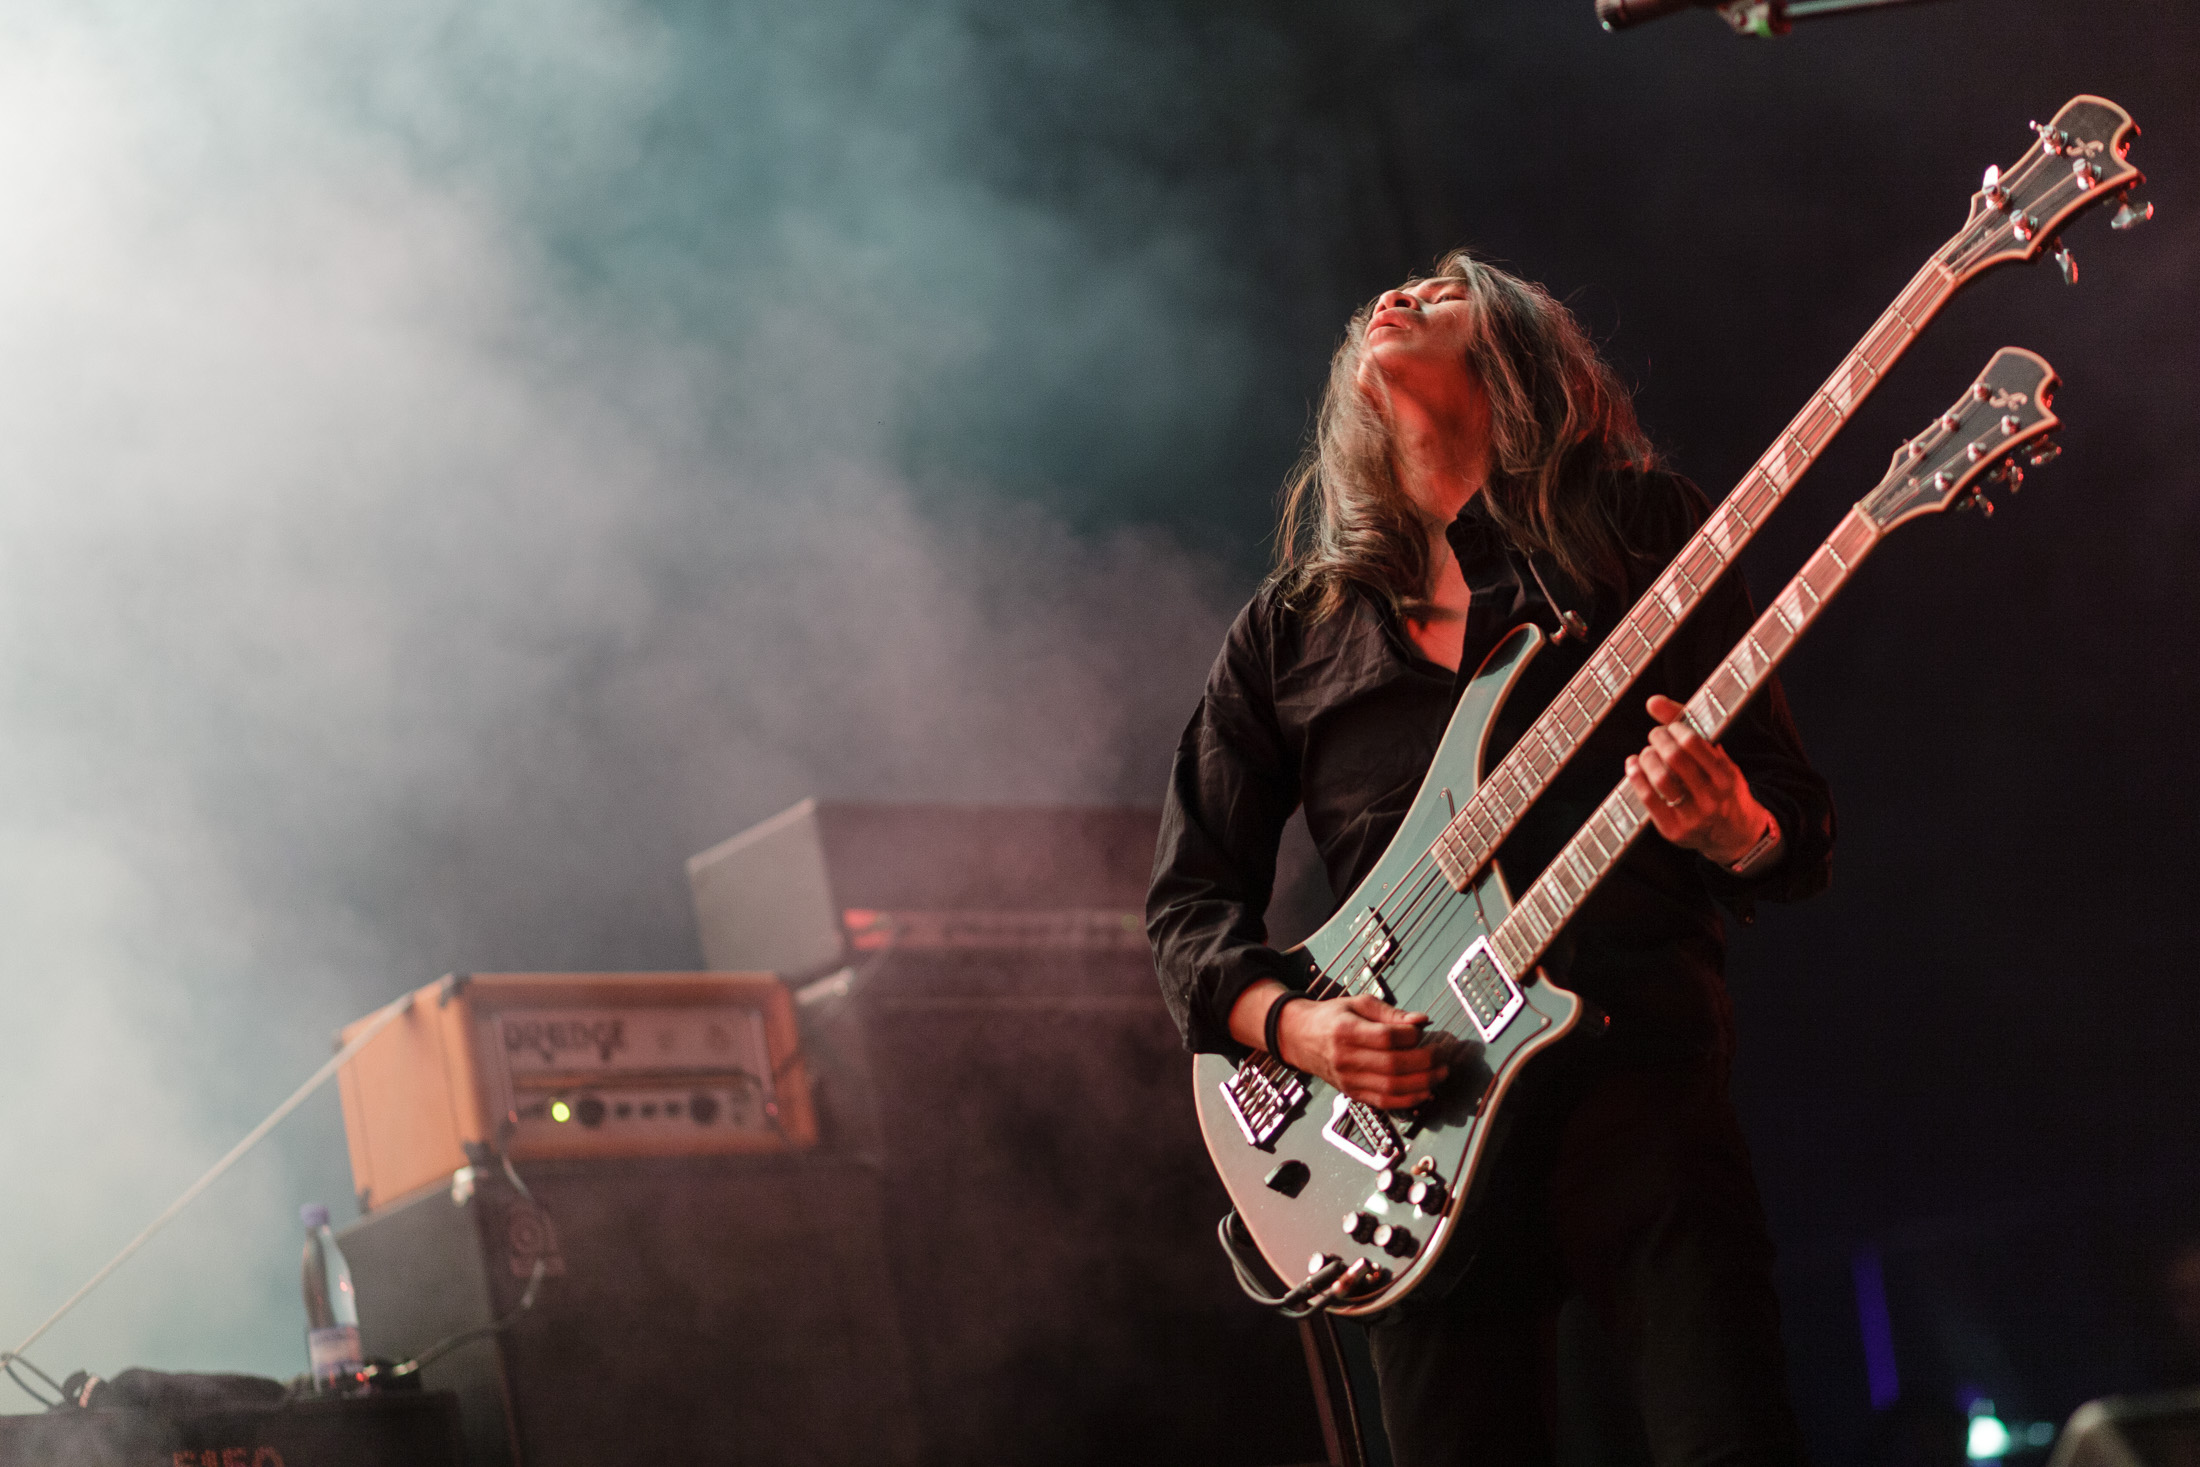 Boris live with Merzbow at Roskilde Festival 2018